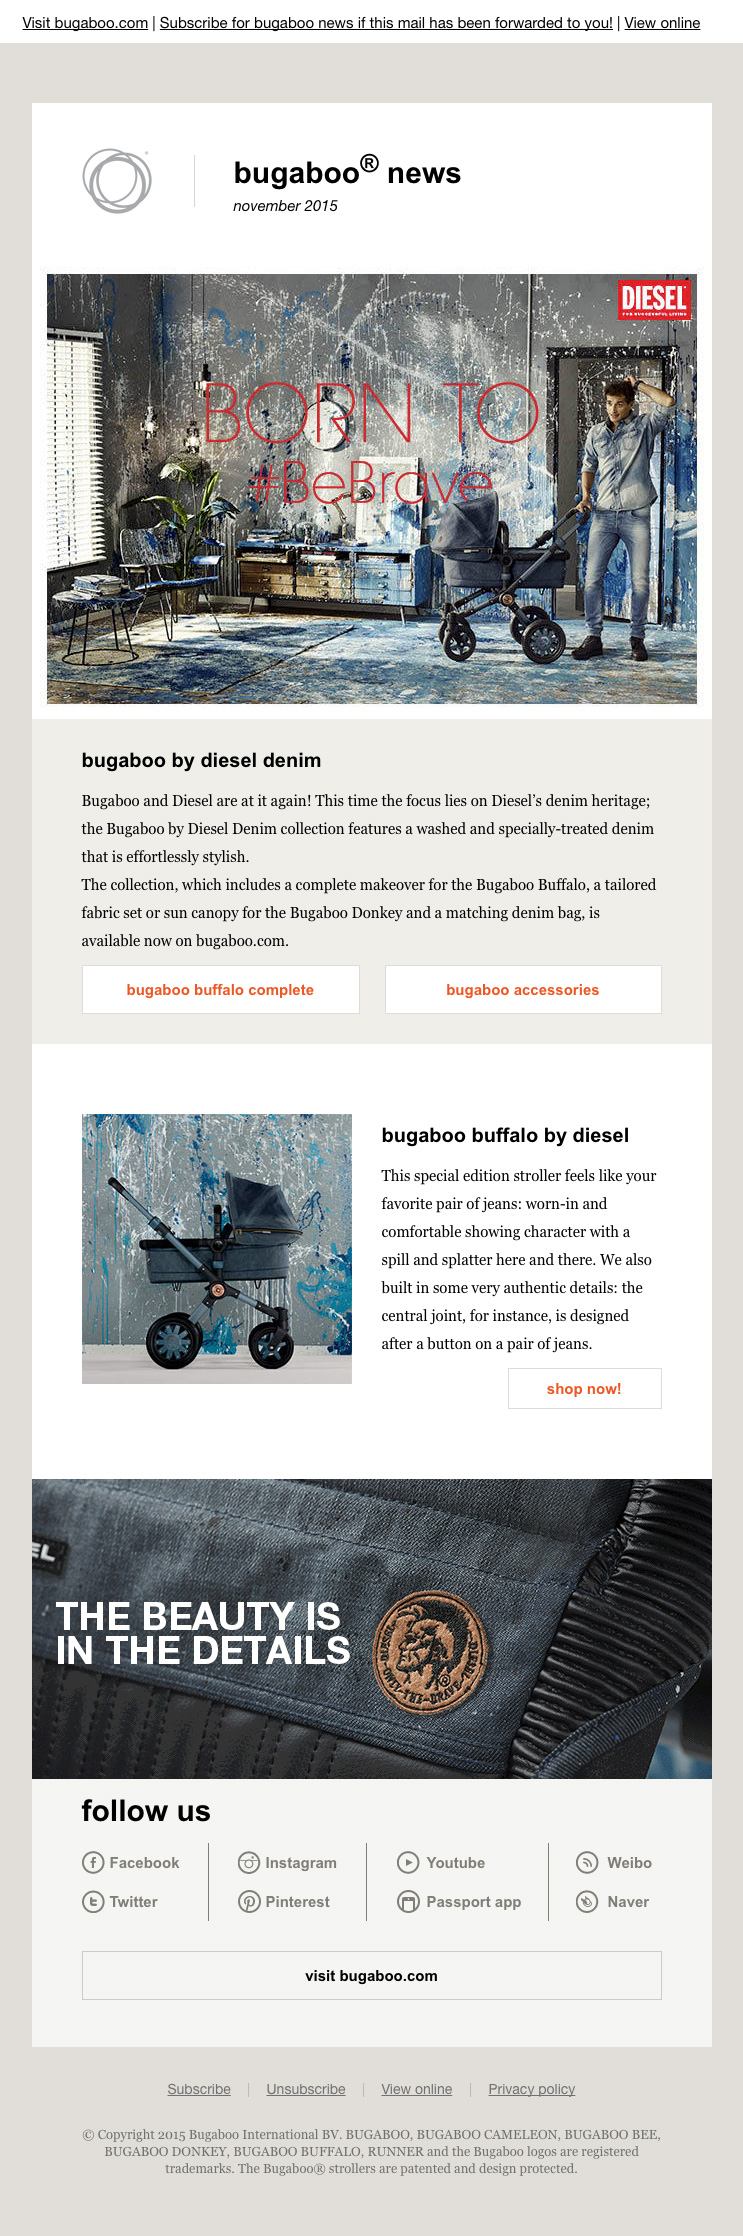 bugaboo-newsletter